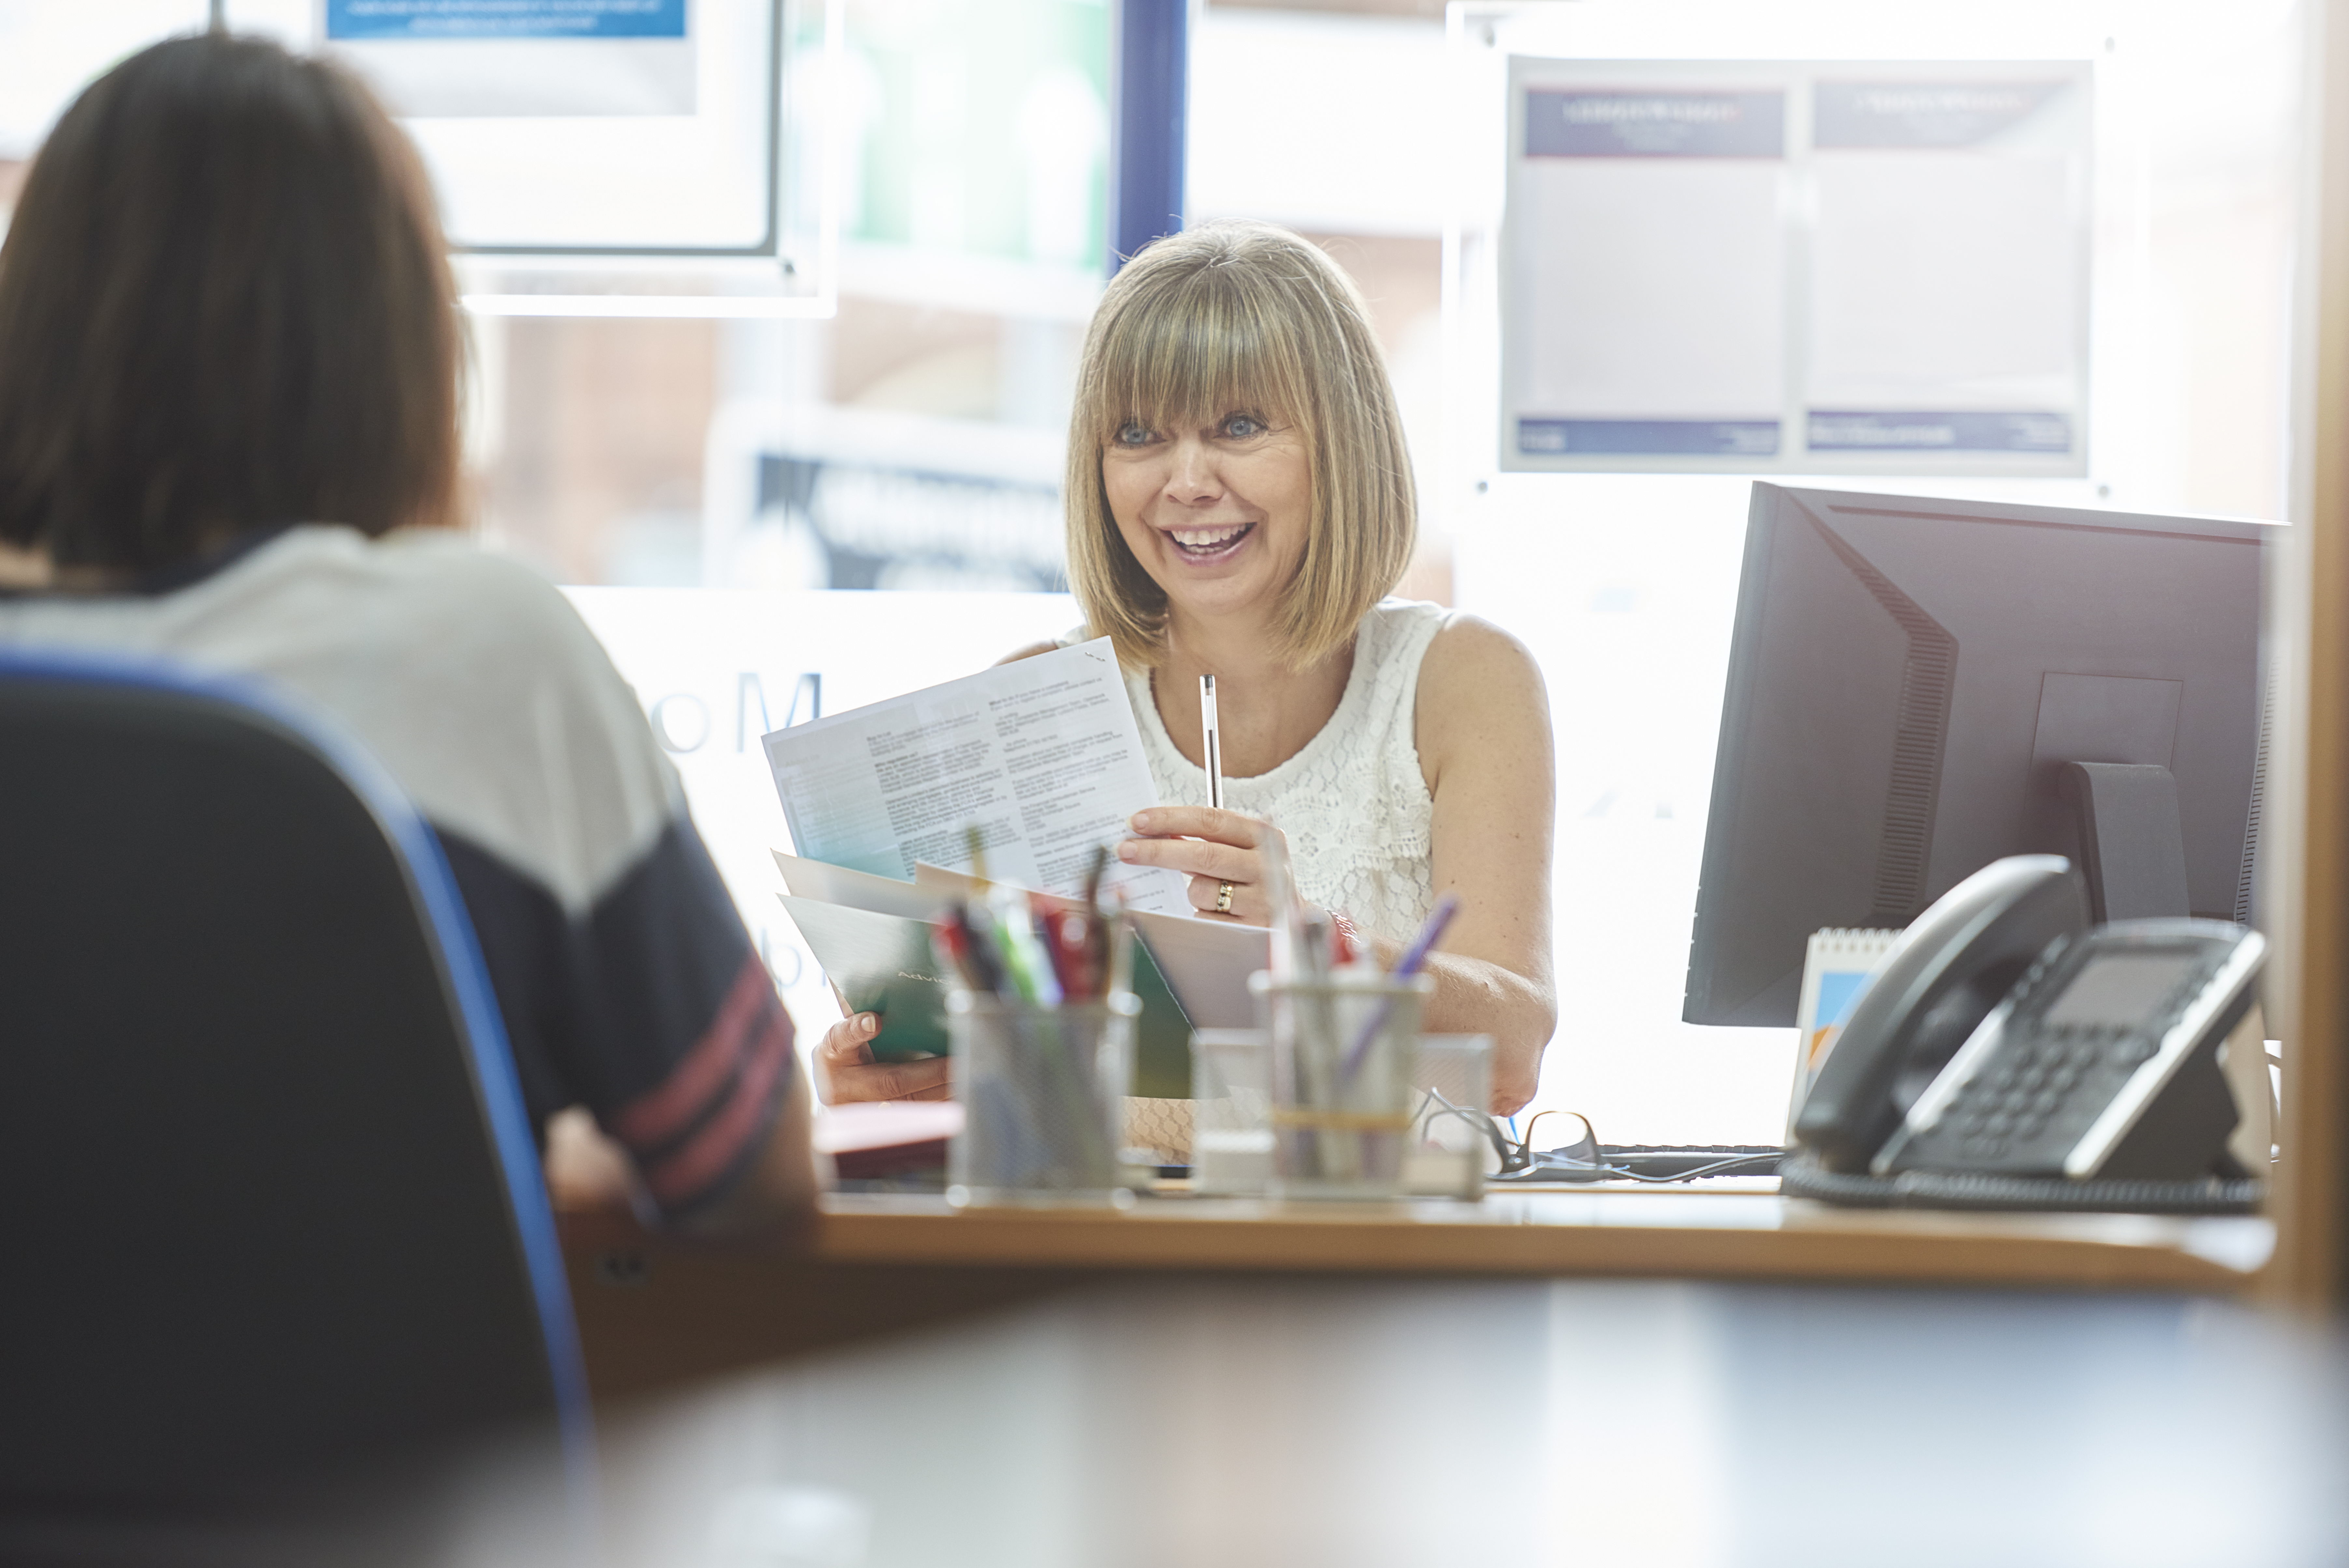 The Changing Role of Estate Agents: A New Customer Focus